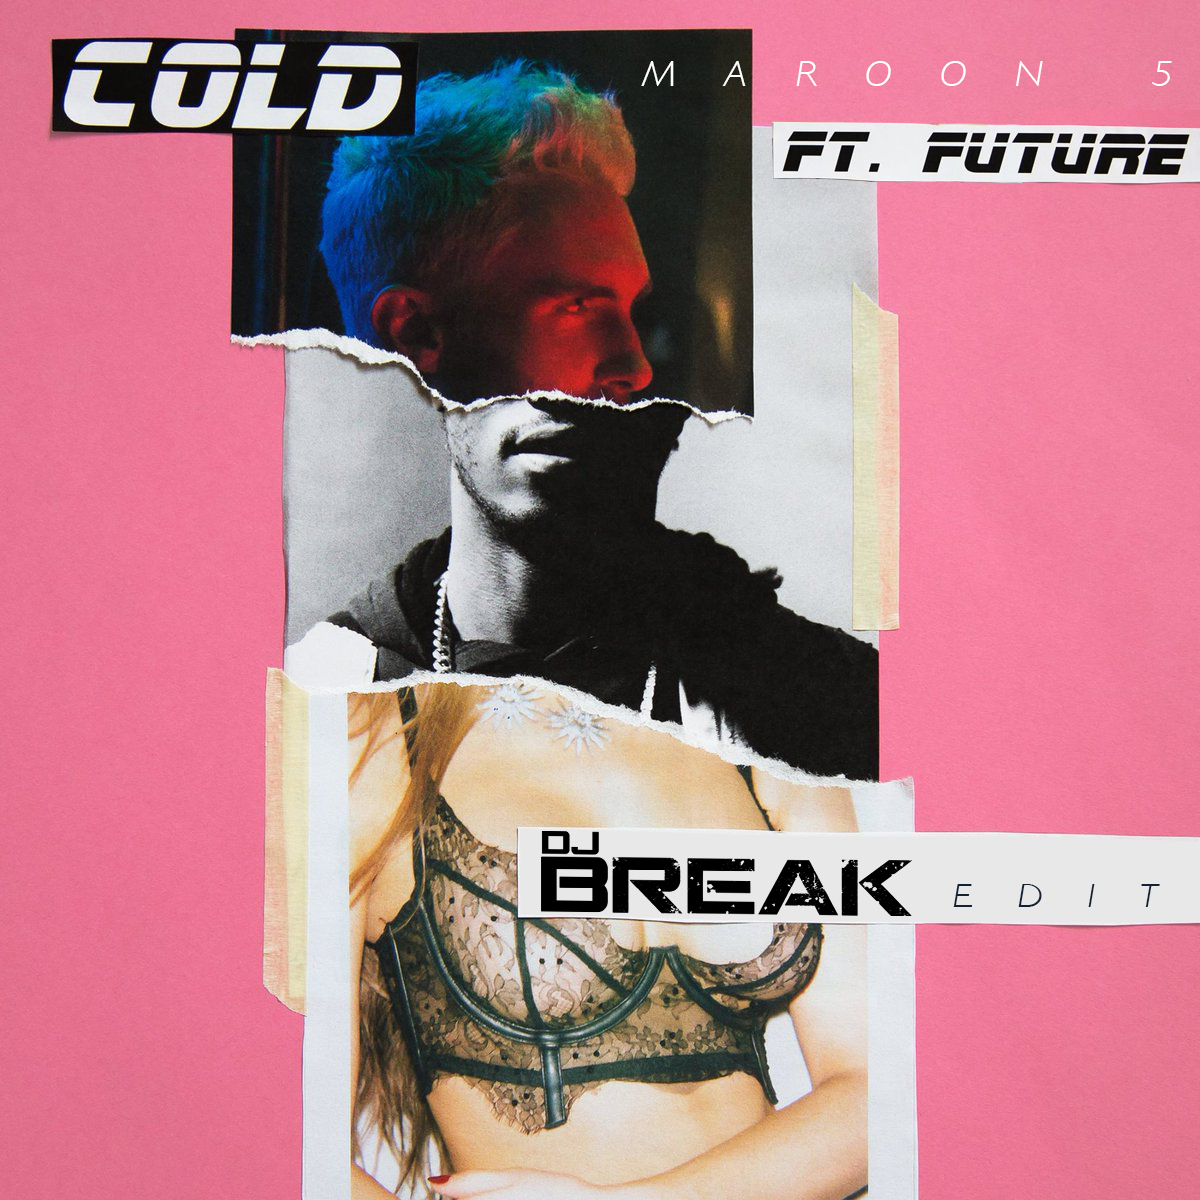 maroon-5-future-cold-(DJ-Break-Edit)-COVERT-ART